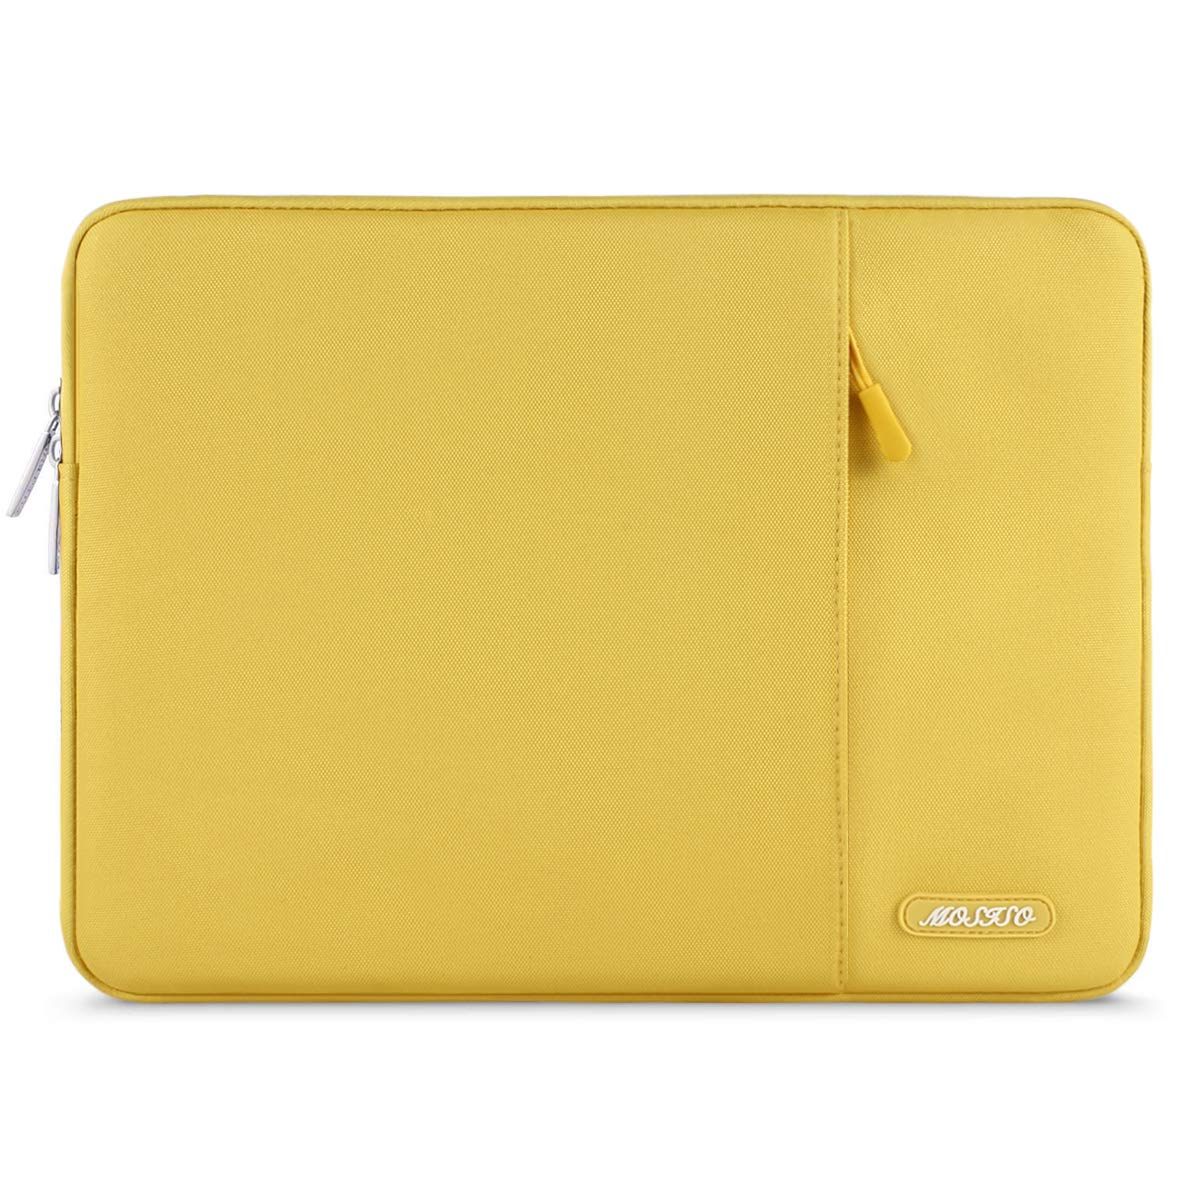 MOSISO Laptop Sleeve Bag Compatible with 13-13.3 inch MacBook Pro, MacBook Air, Notebook Computer, Vertical Style Water Repellent Polyester Protective Case Cover with Pocket, Yellow